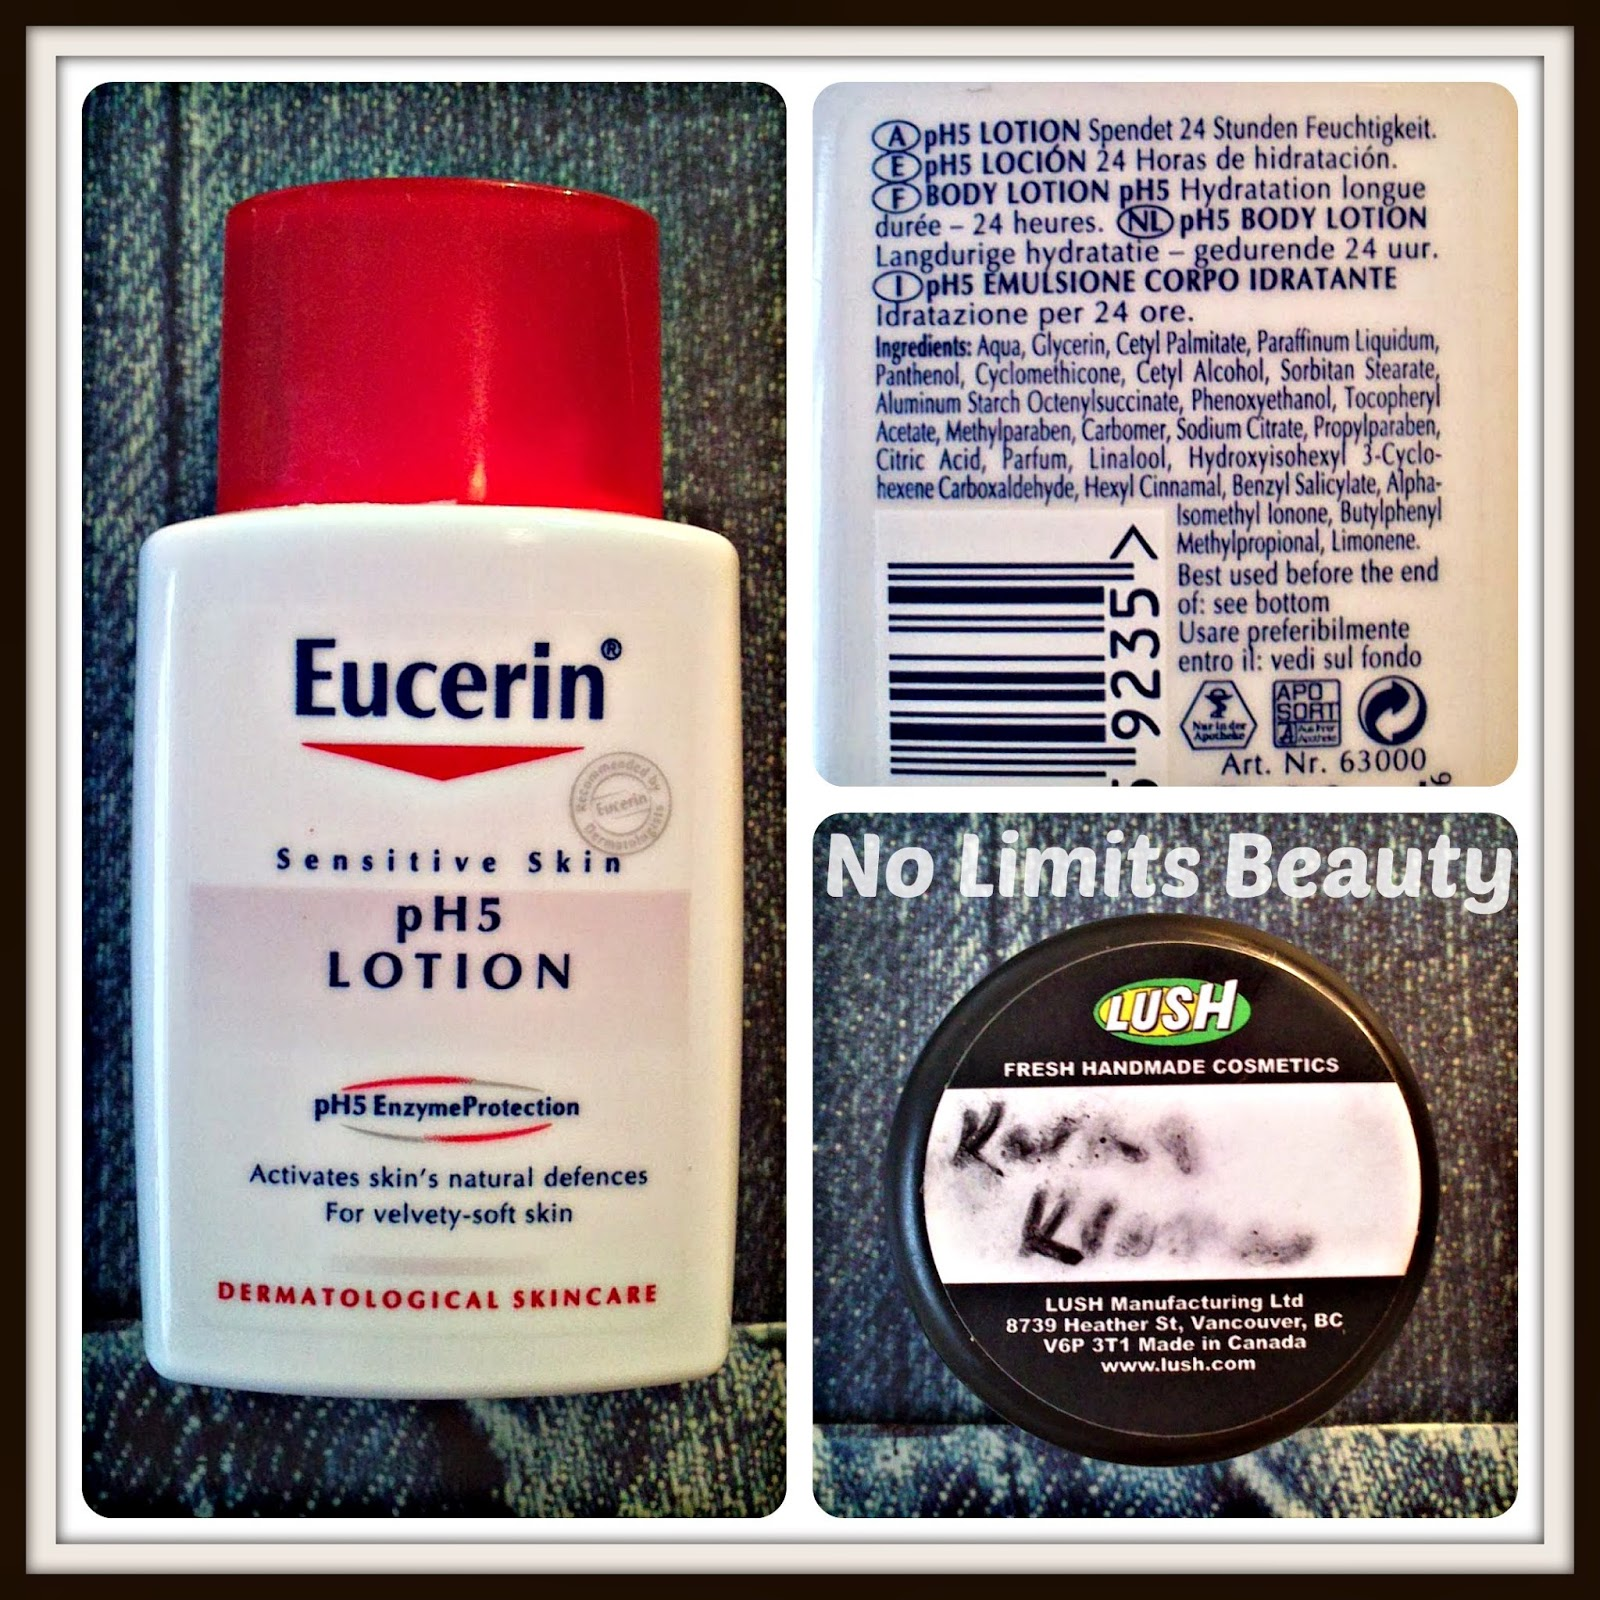 Sensitive Skin PH5 Lotion - Eucerin